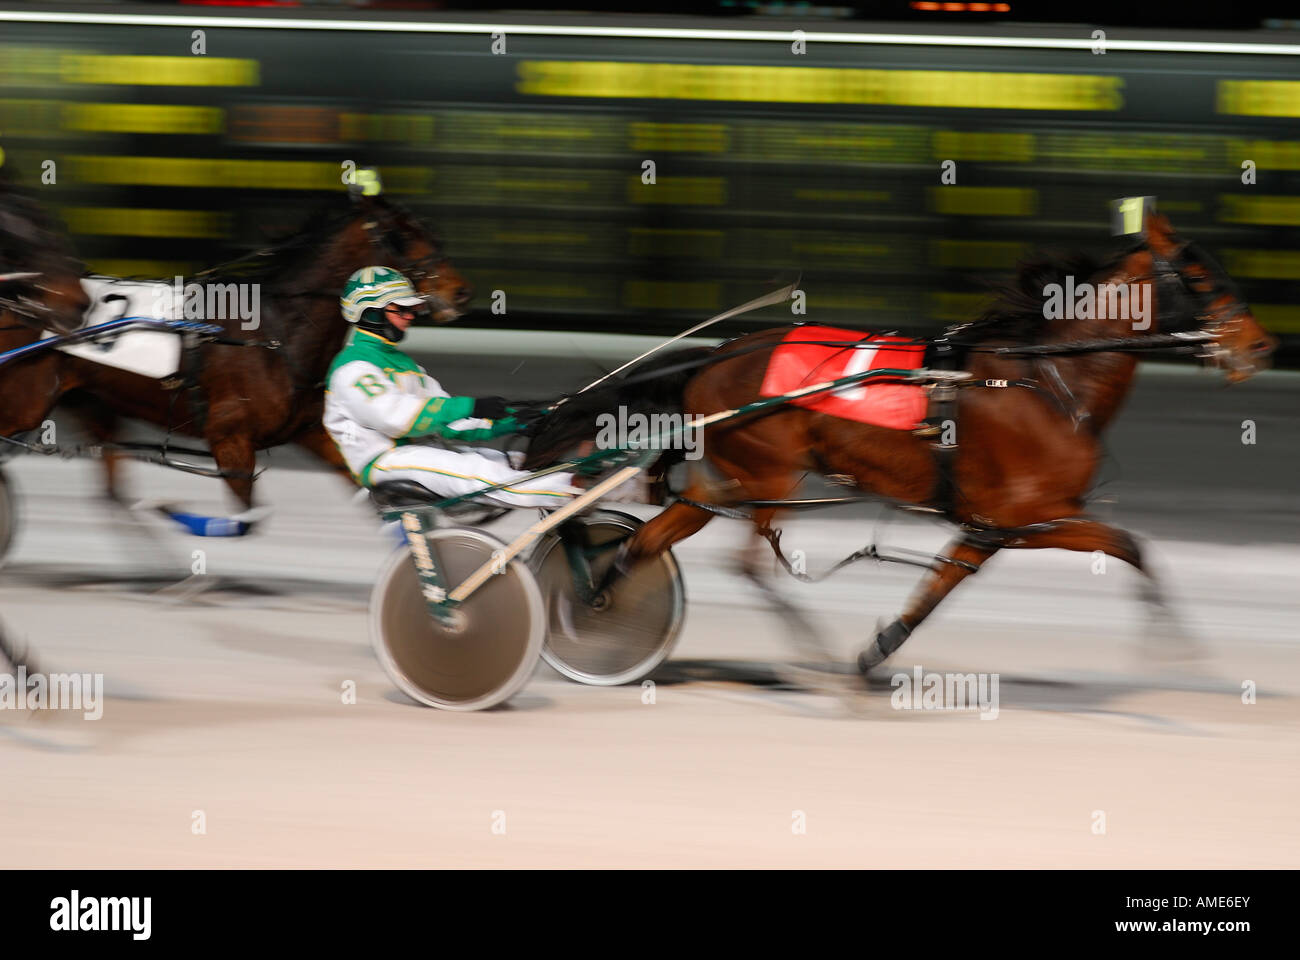 Number one harness racer breaks away at finish line to win at night in winter Ontario - Stock Image